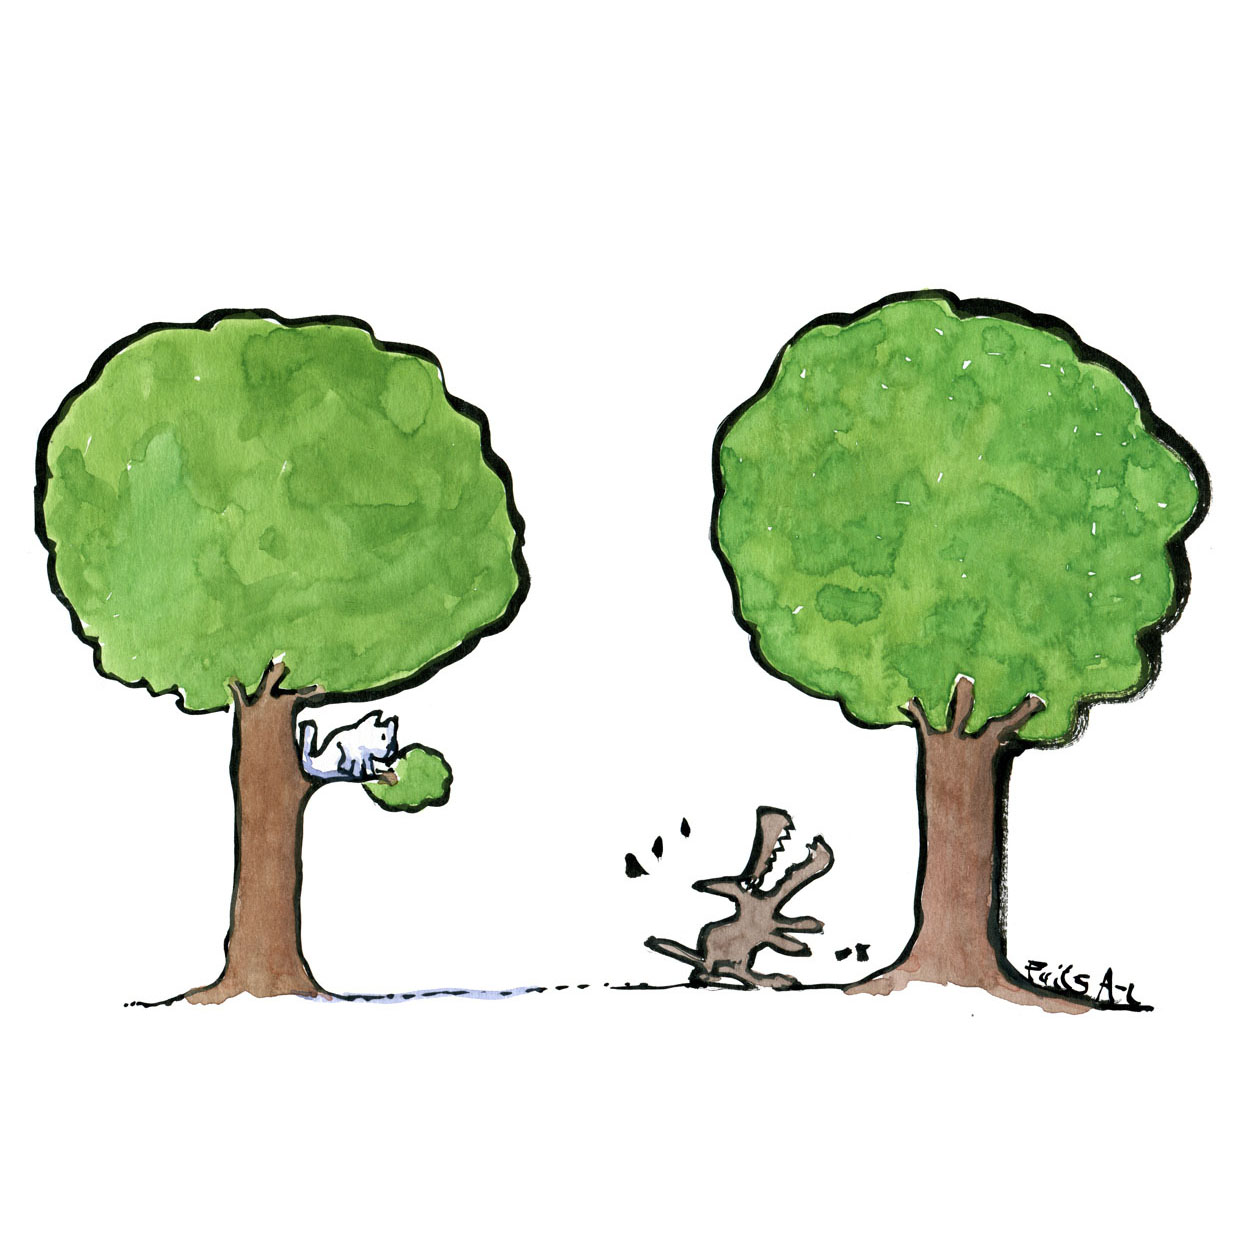 Classic illustration cat in one tree and a dog barking up a different tree. Drawing by Frits Ahlefeldt